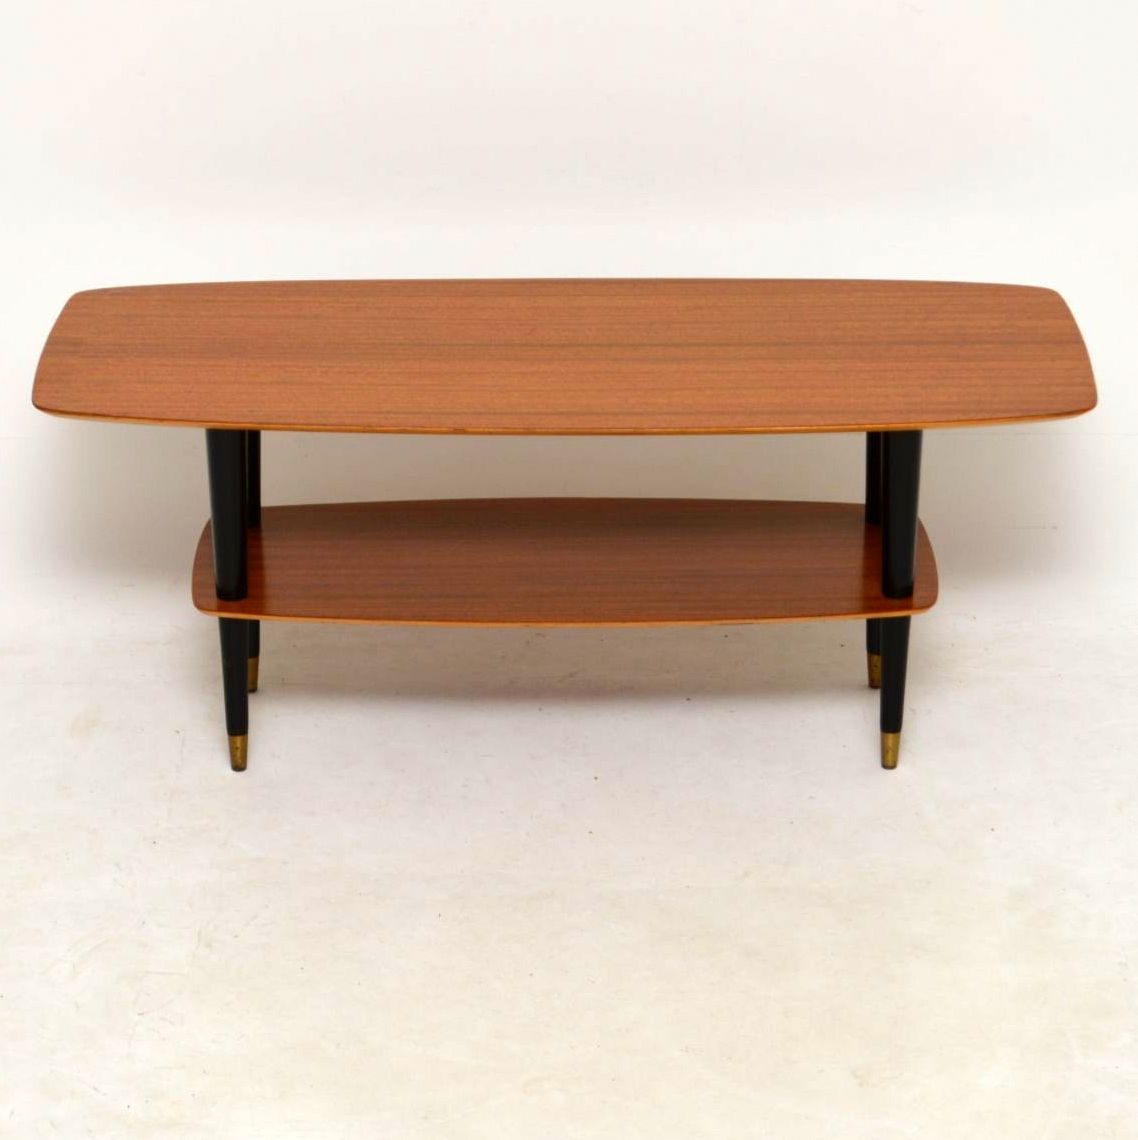 Vintage Teak Coffee Tables: 1950's Teak Vintage Coffee Table